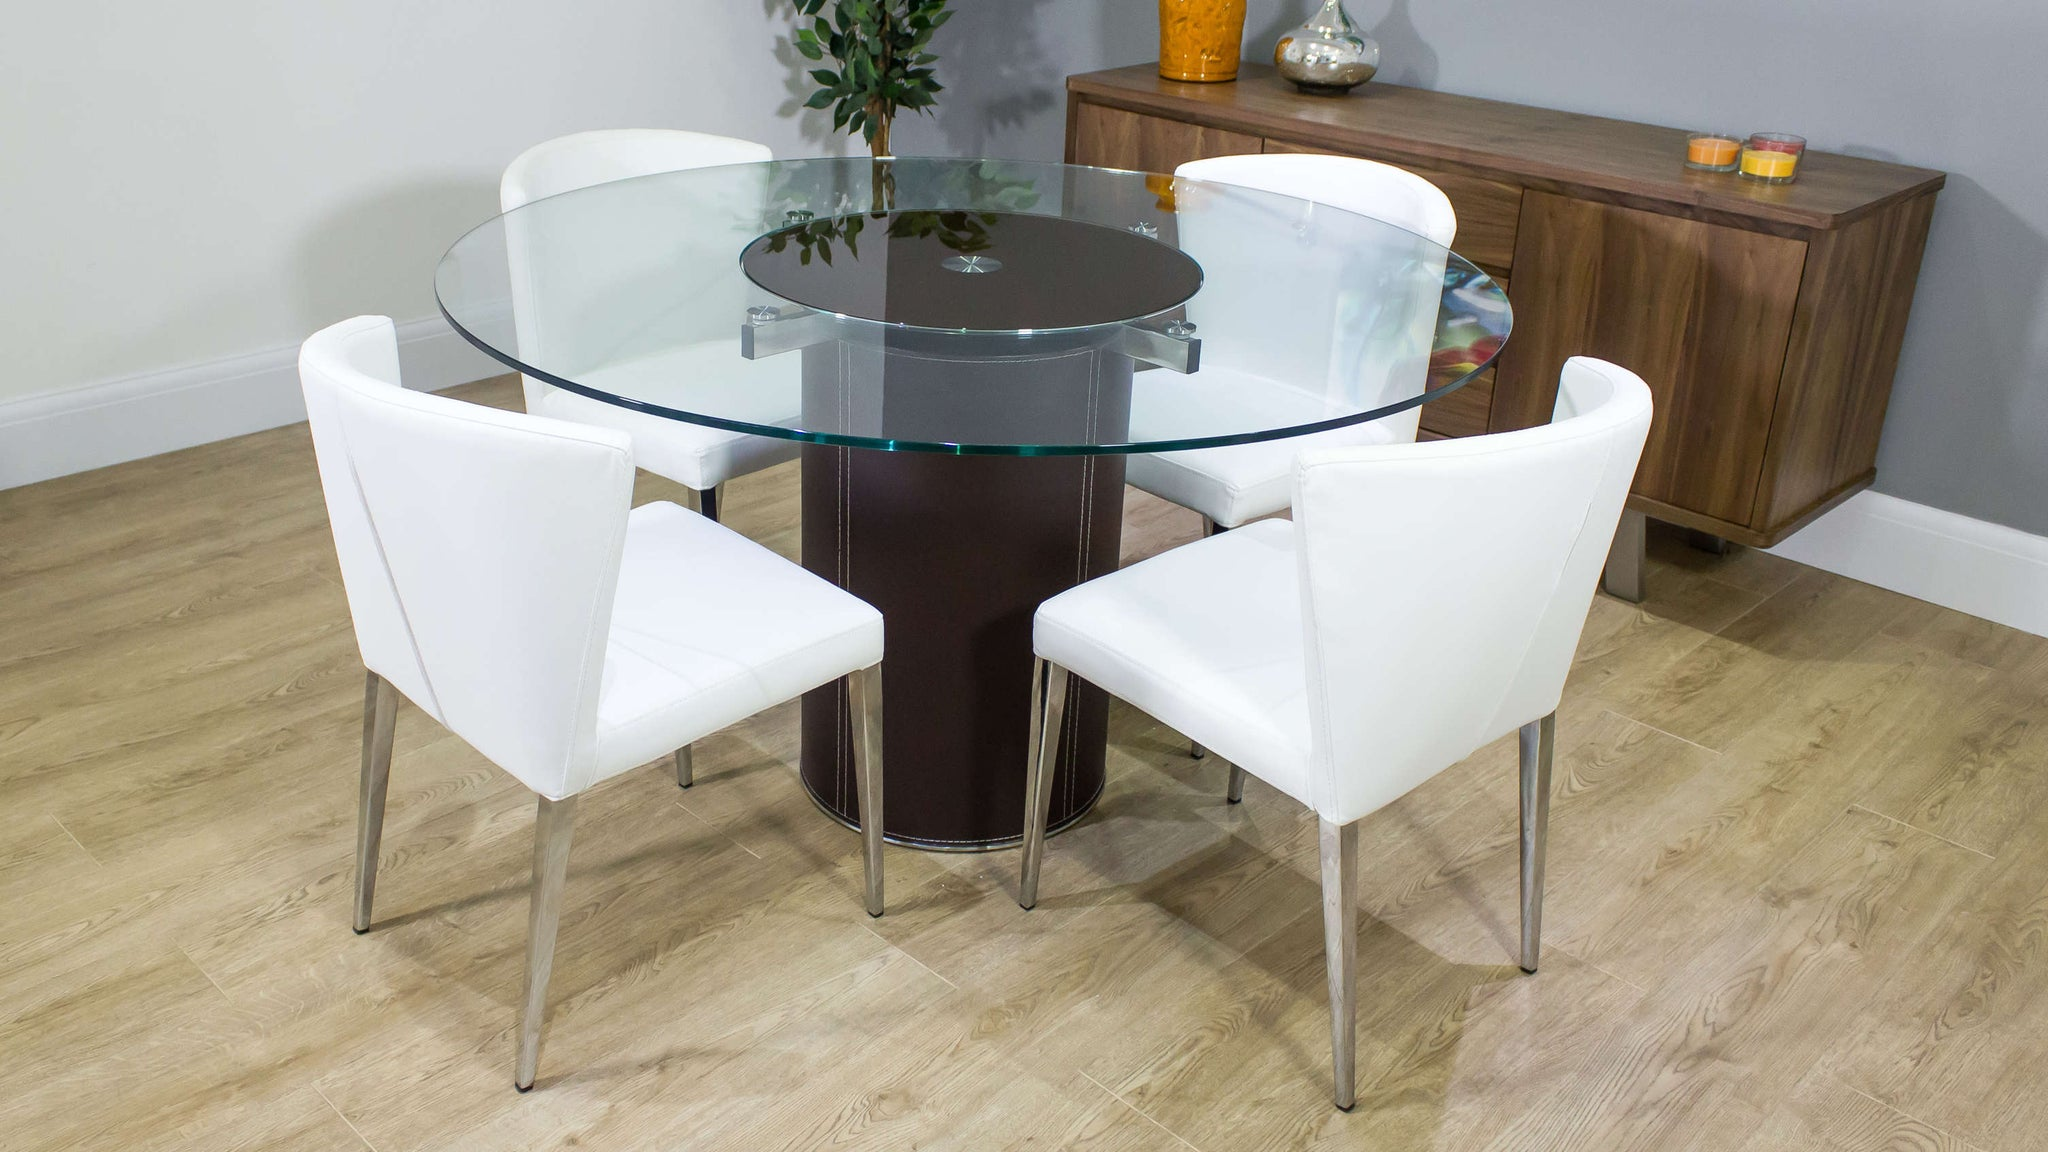 Contemporary White Dining Chairs and Glass Dining Table